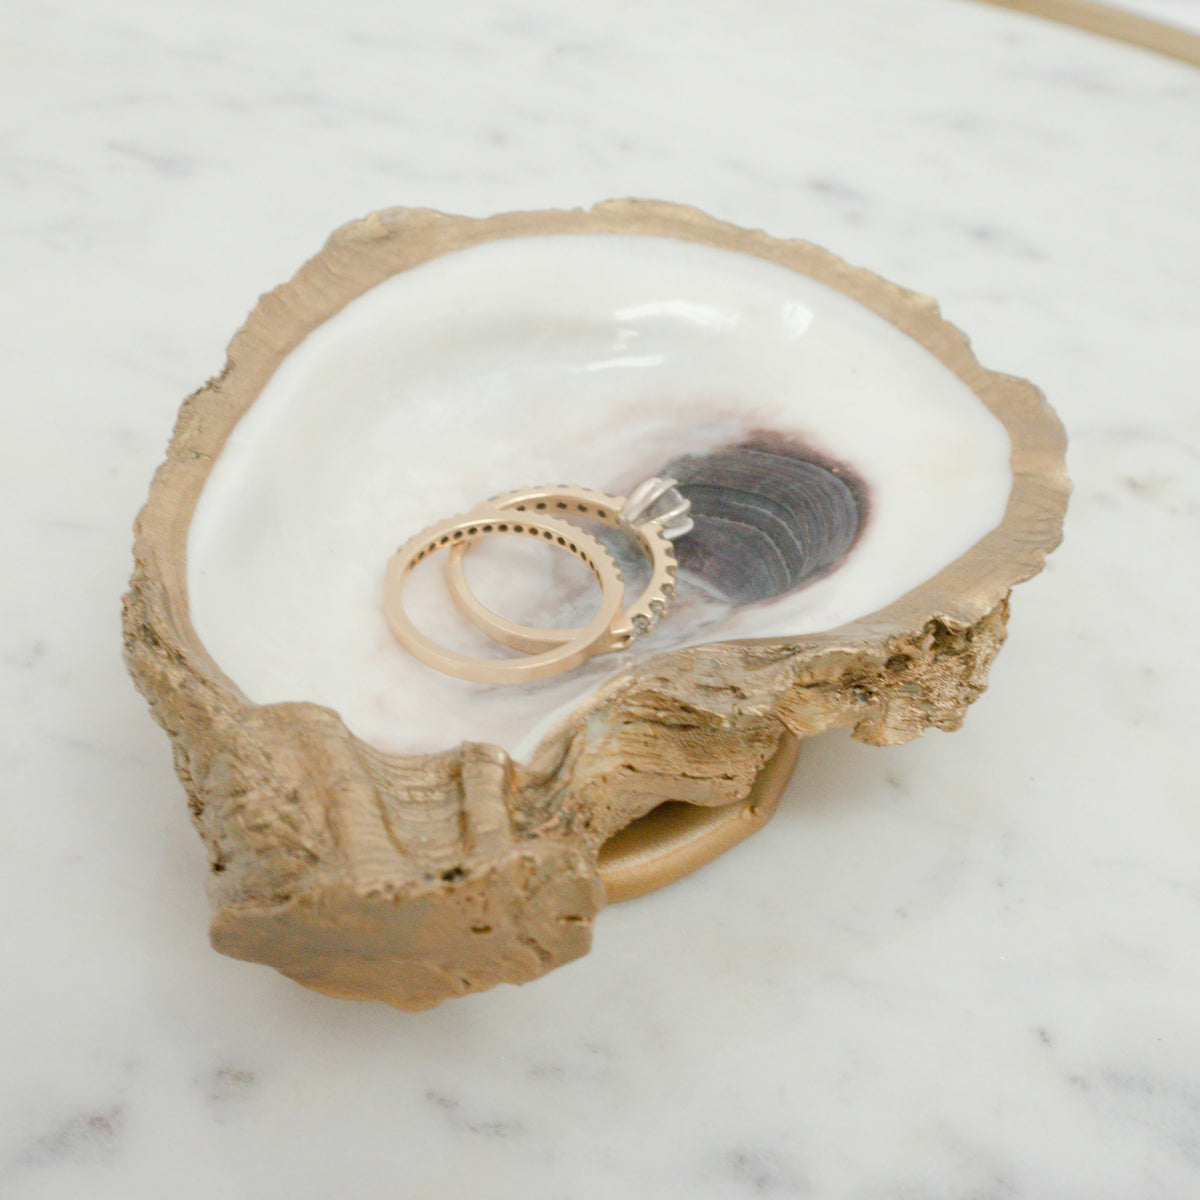 Oyster Jewelry Ring Dish